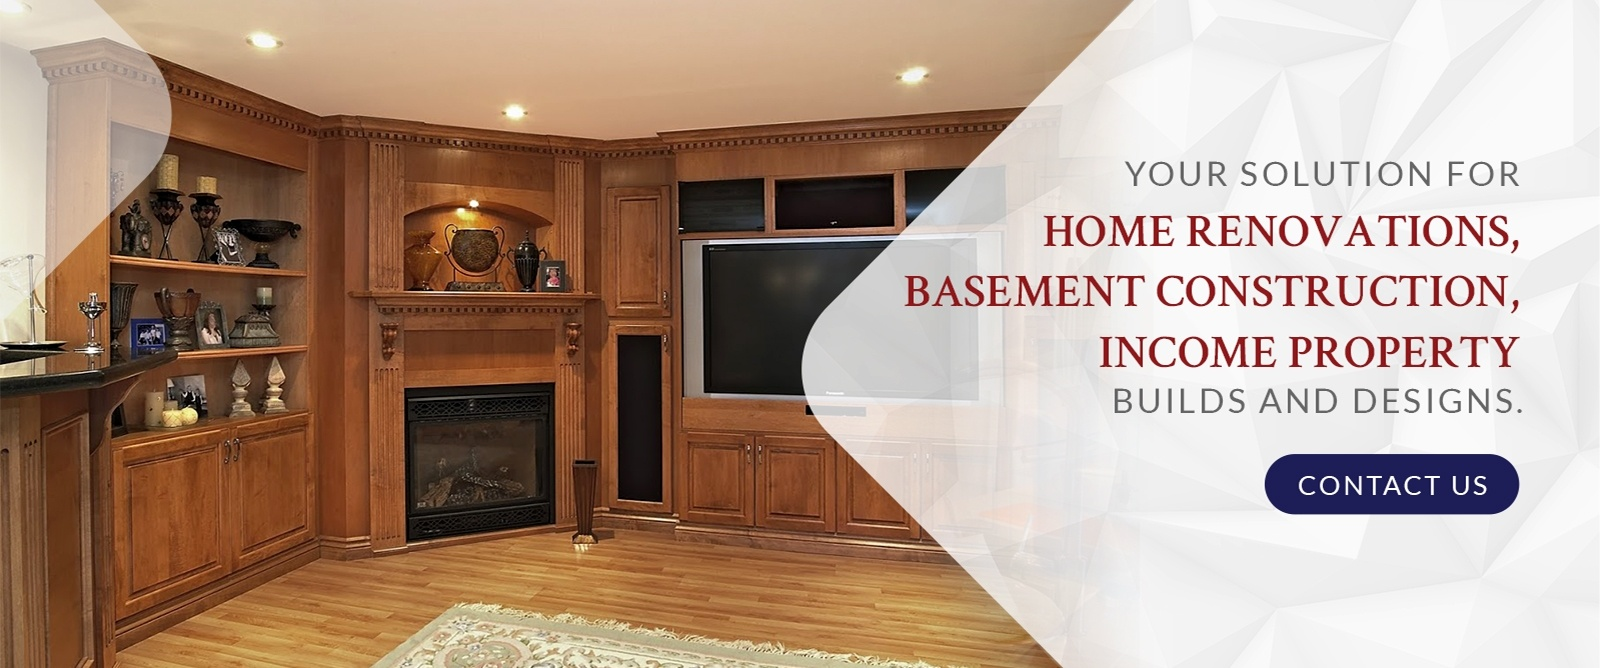 Home Renovations in Toronto by Finished Basements